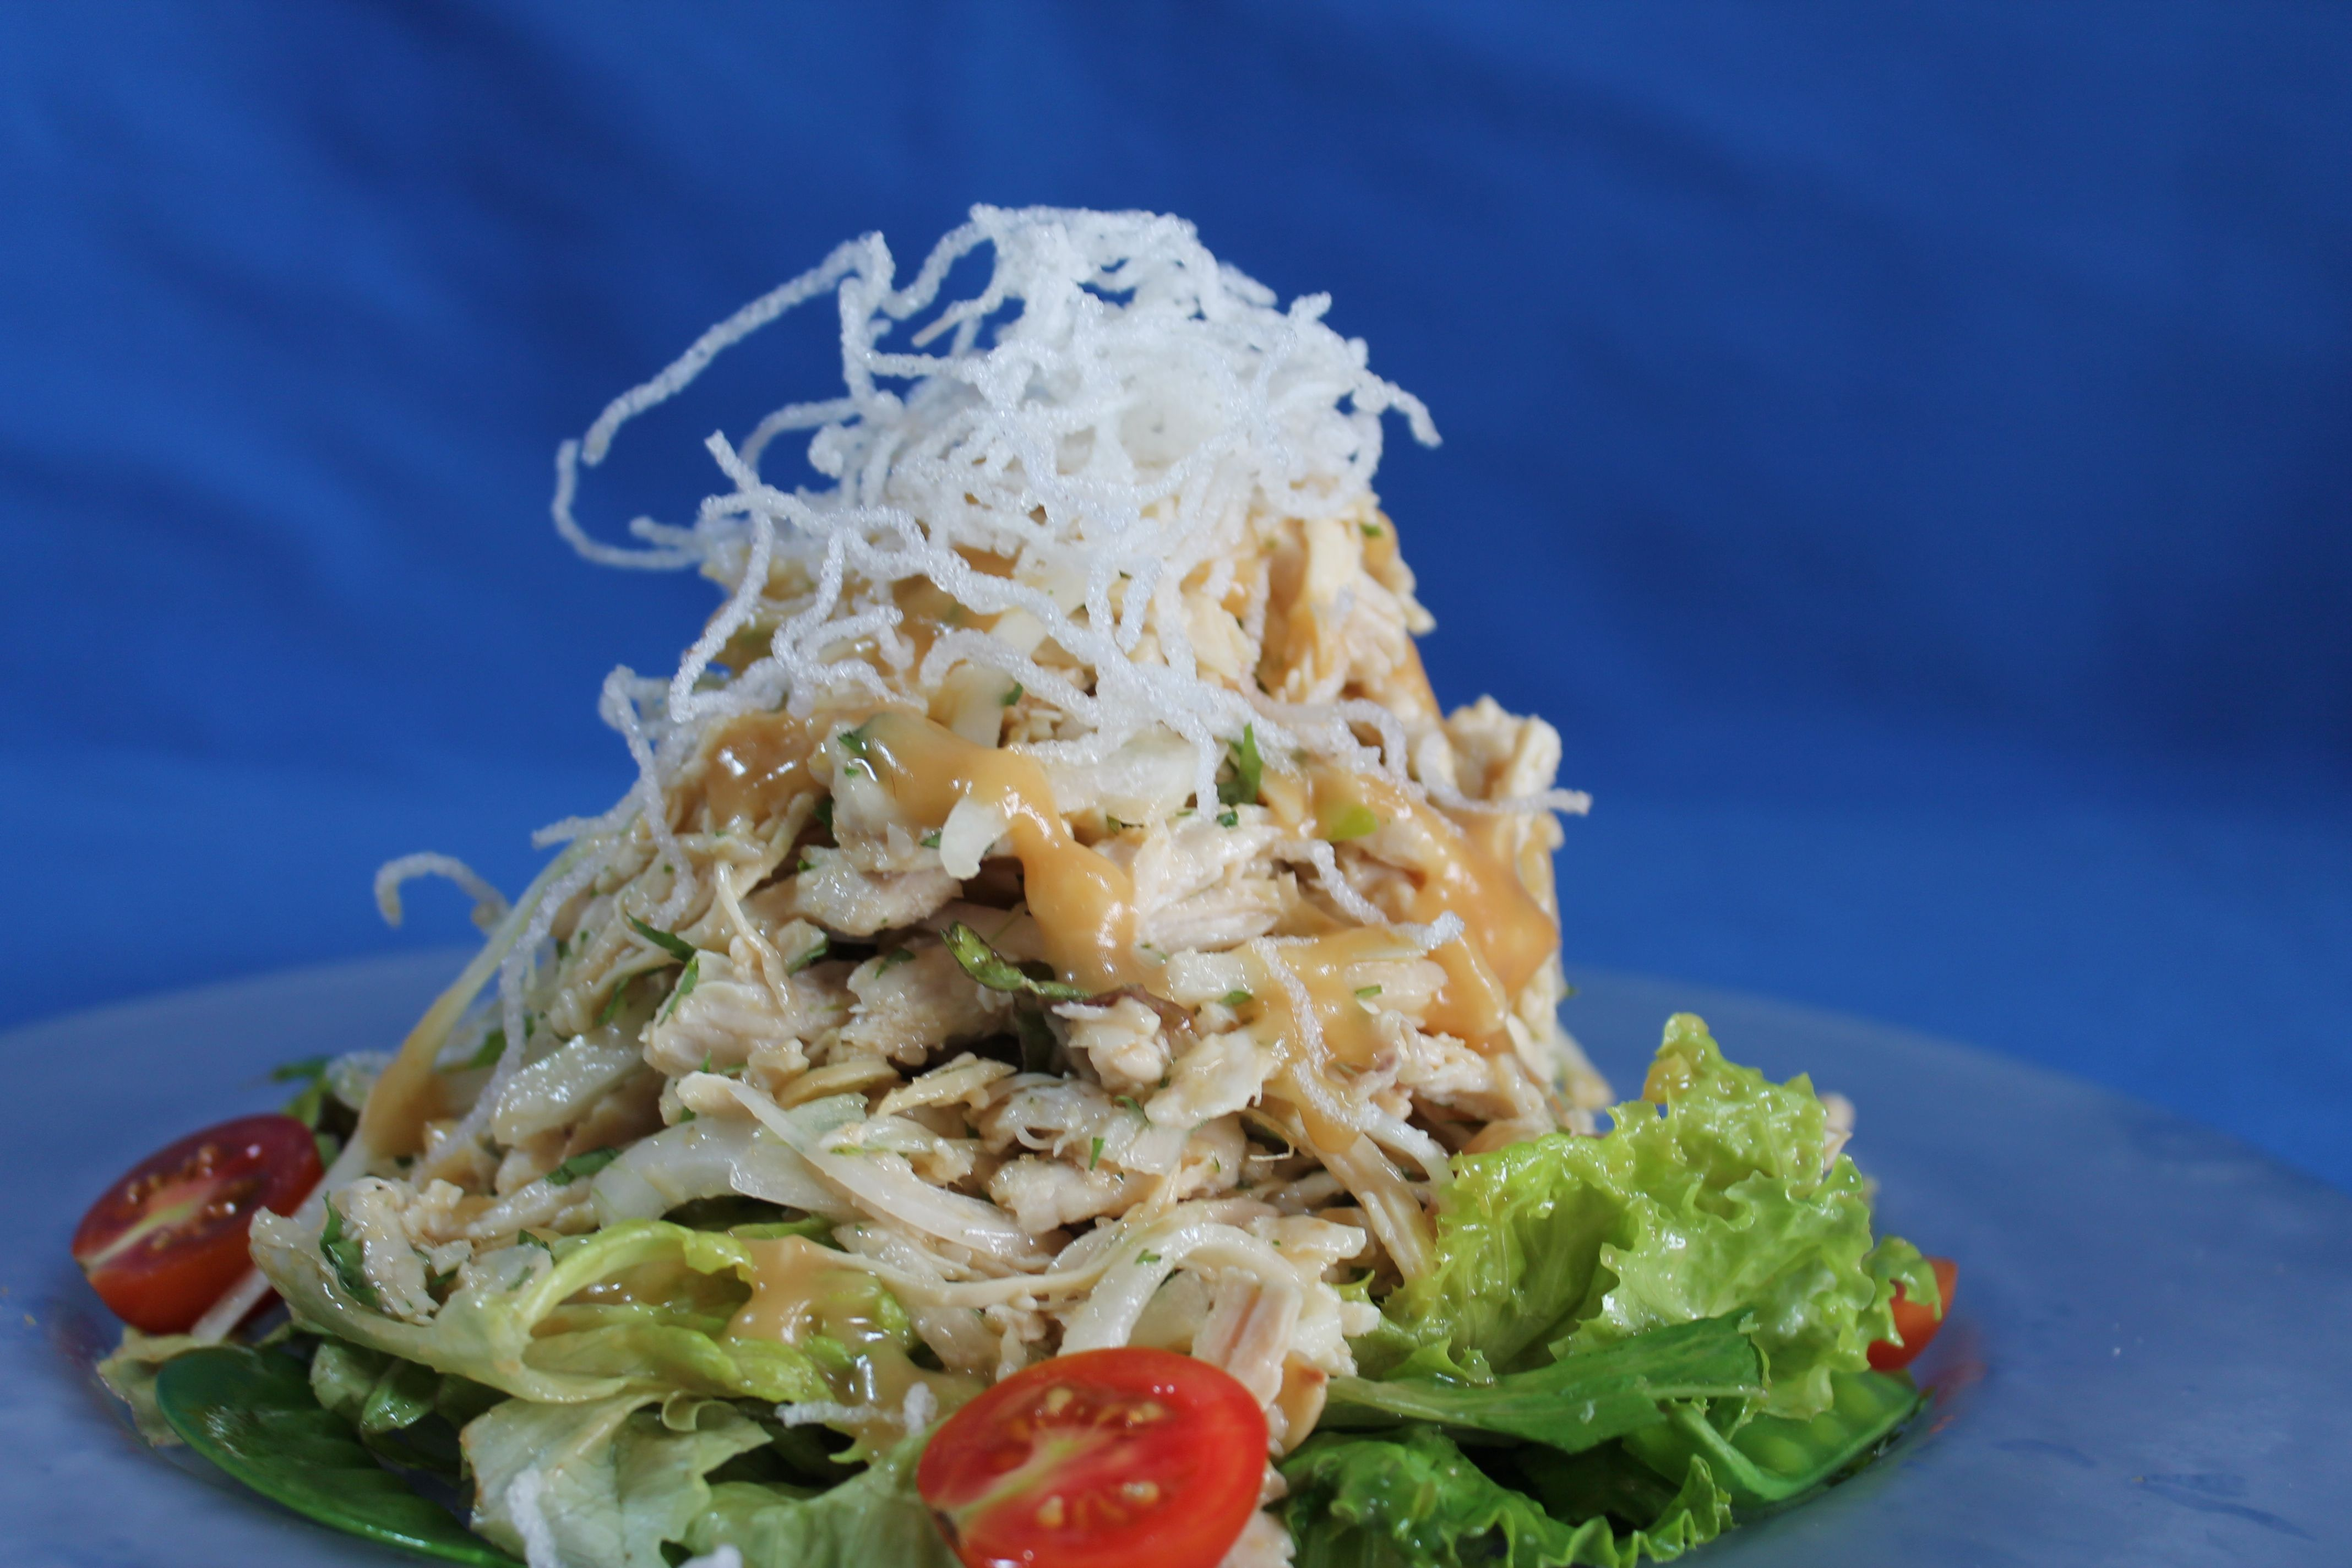 How To Cook Chicken Breast With Salad Dressing